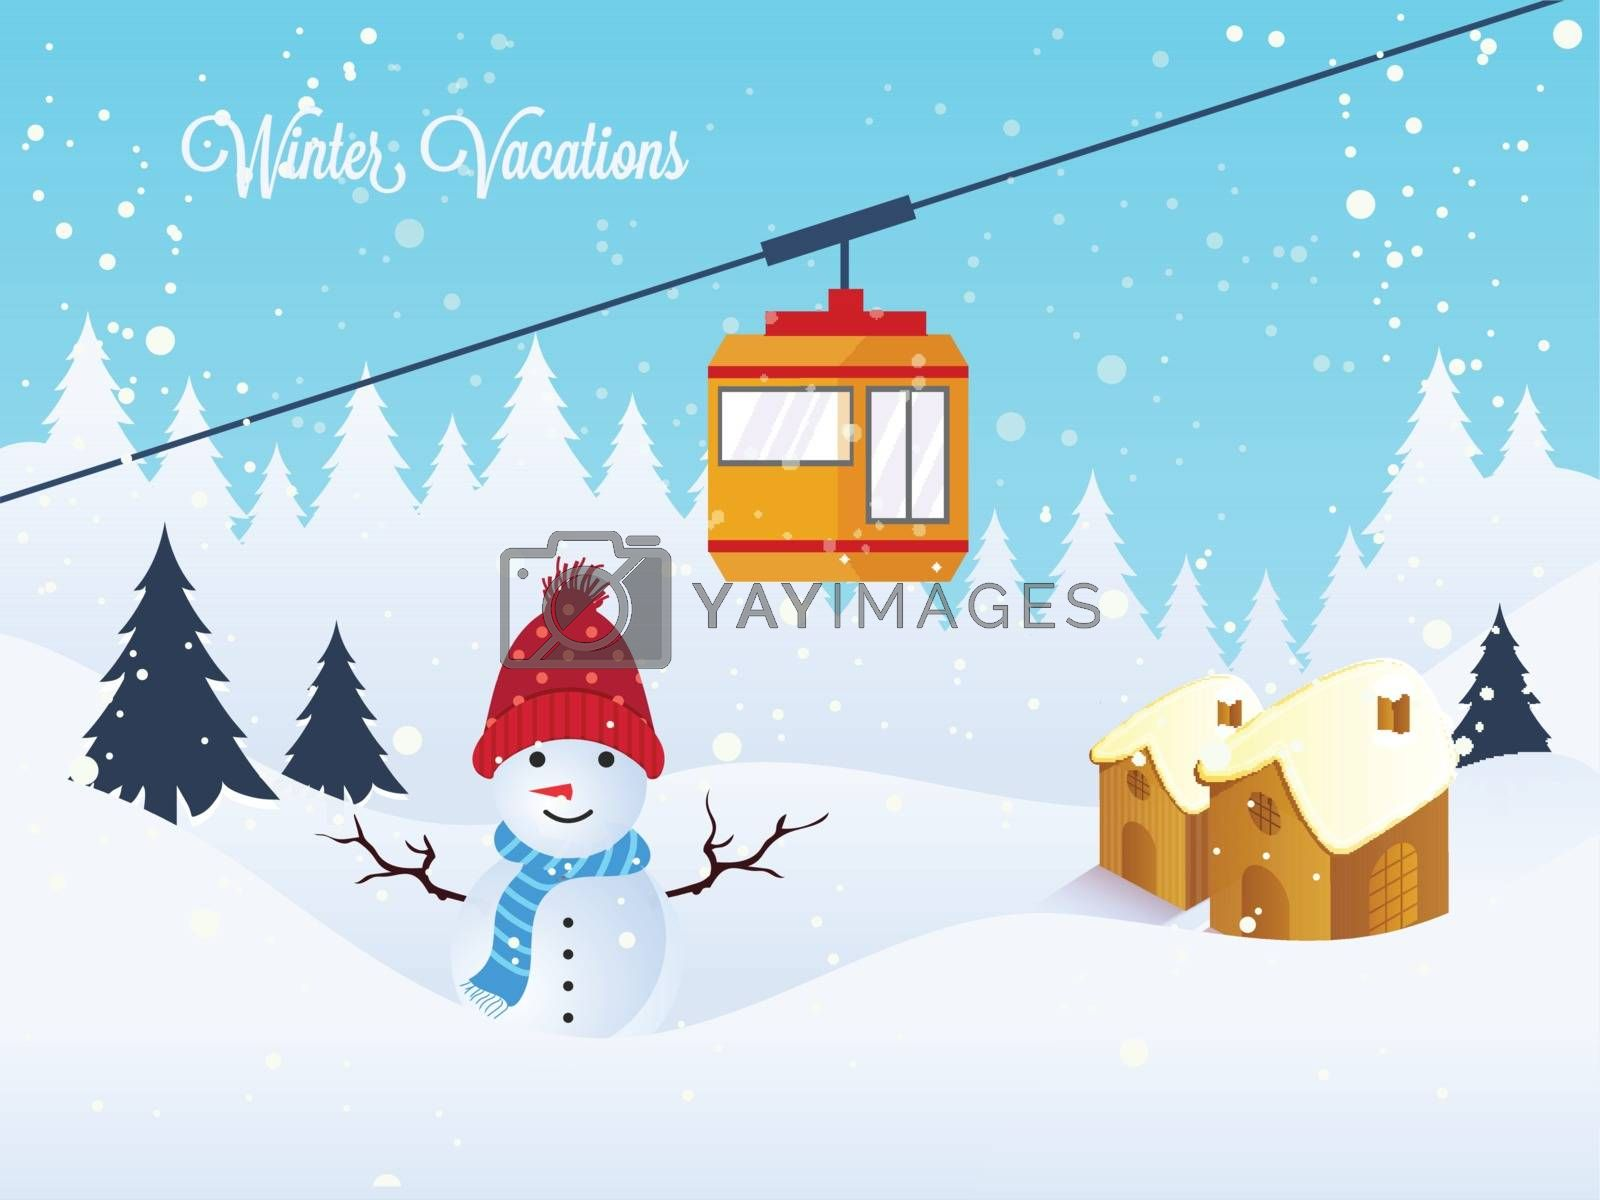 Snow capped winter background with illustration of snowman, houses and xmas trees for Winter Vacation celebration concept.